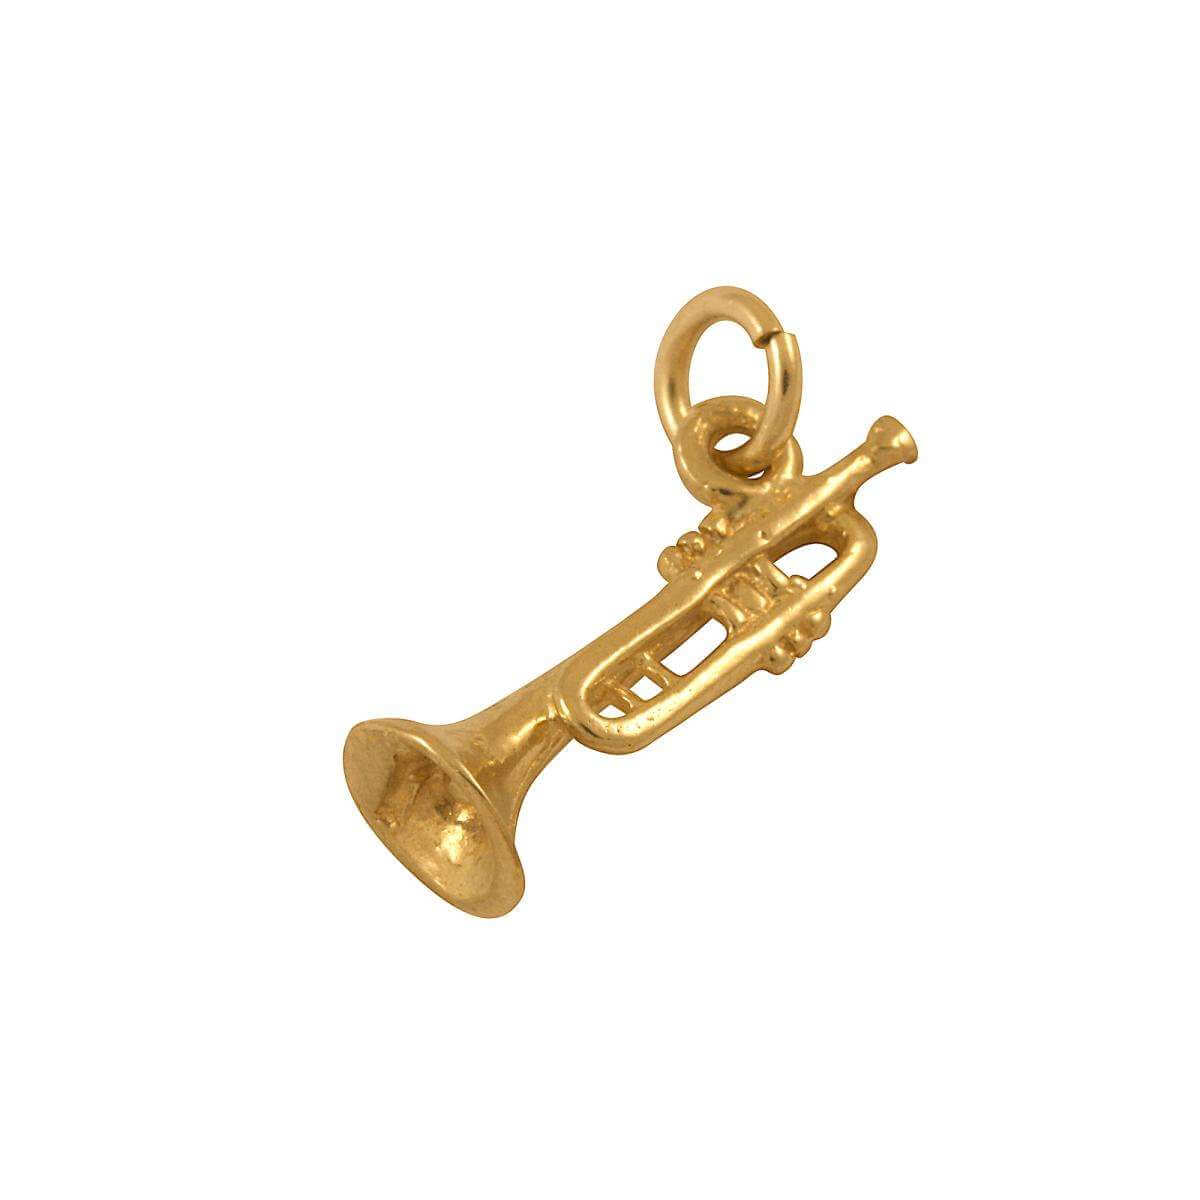 9ct Gold Trumpet Charm